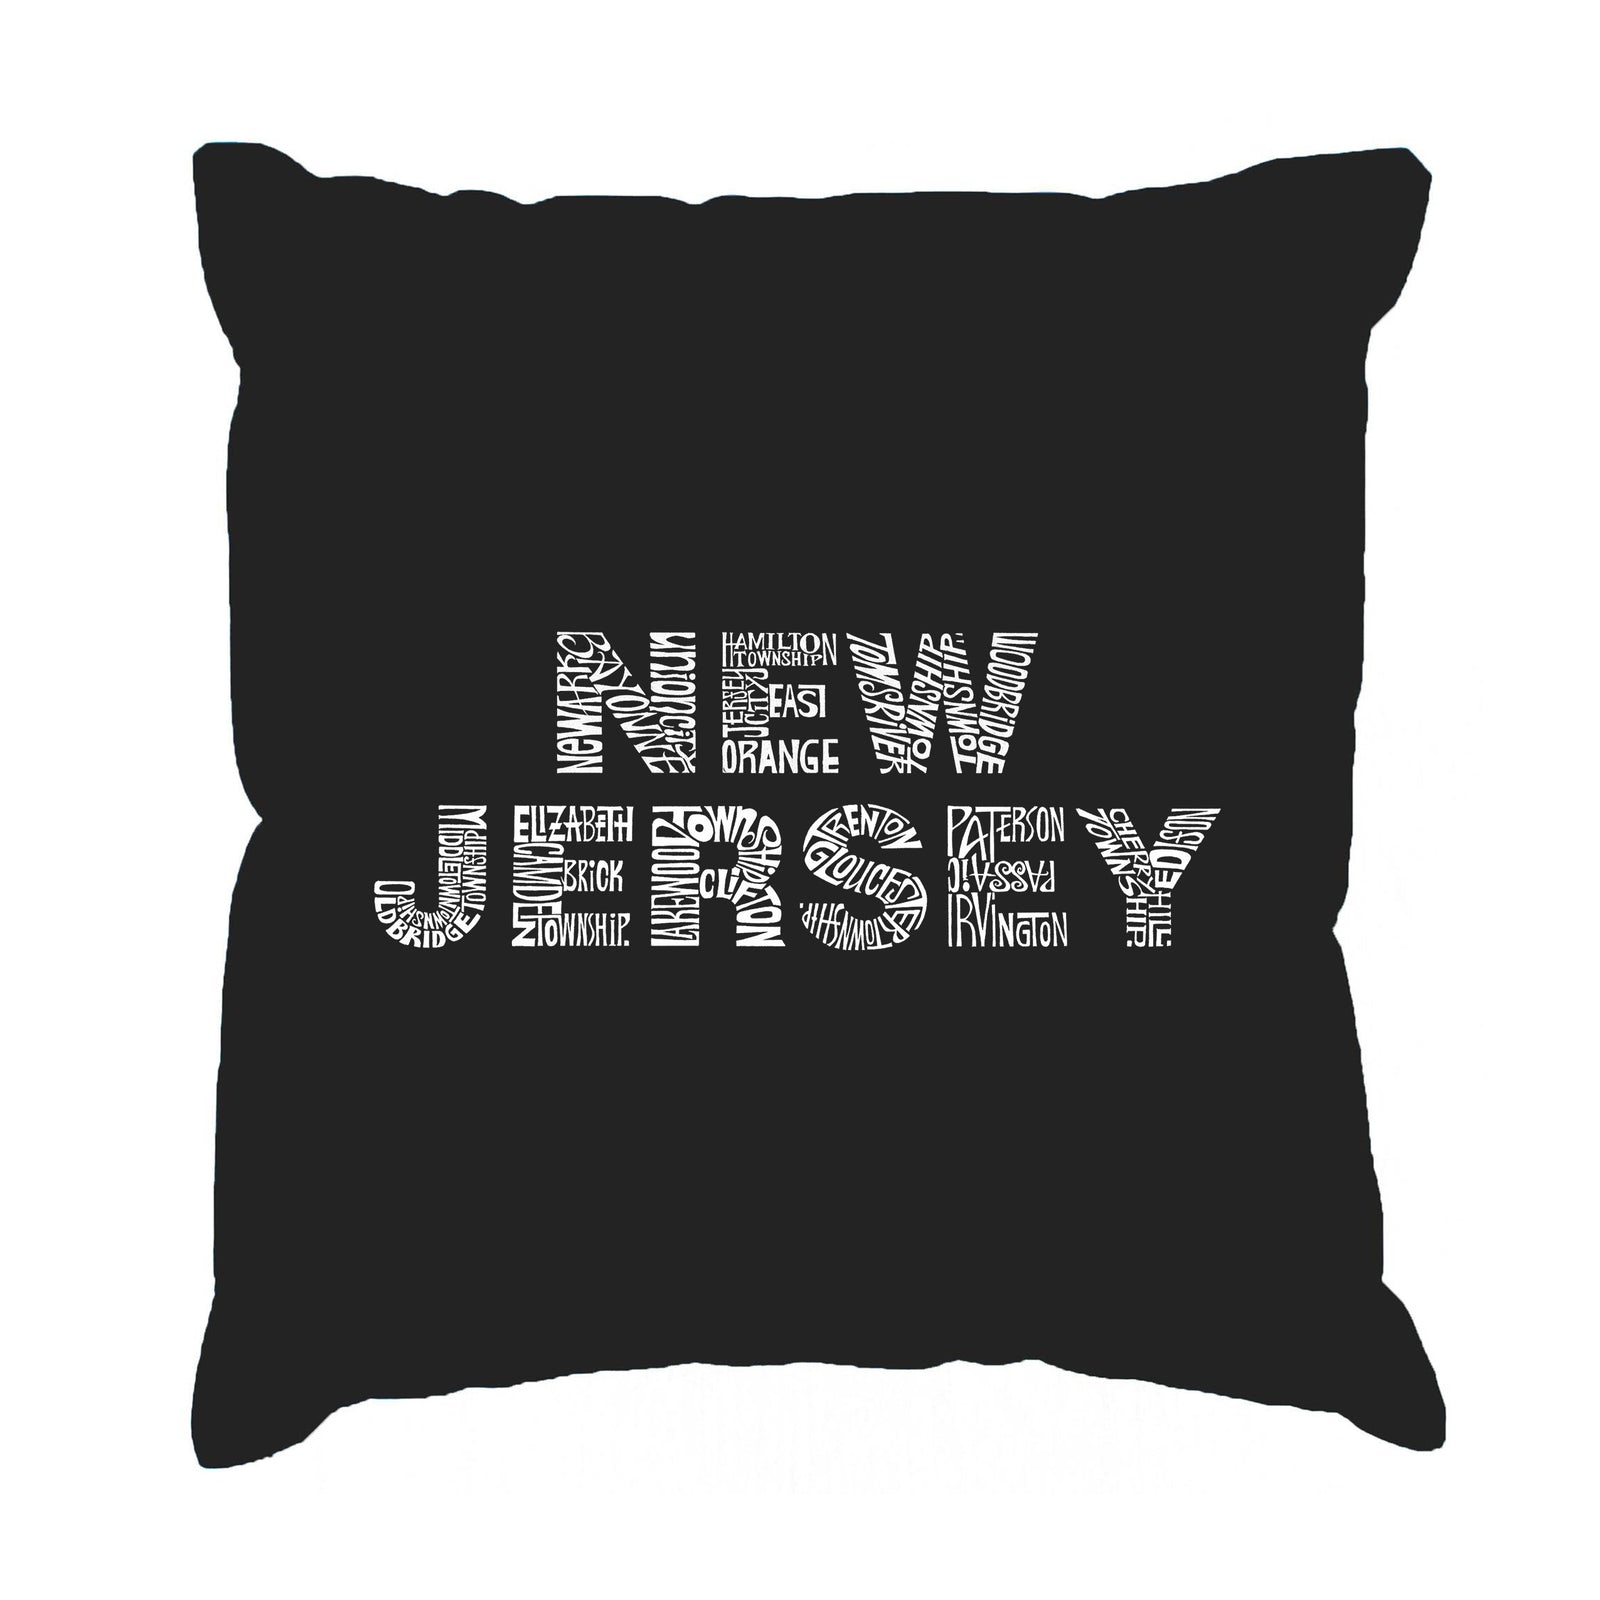 Throw Pillow Cover - NEW JERSEY NEIGHBORHOODS